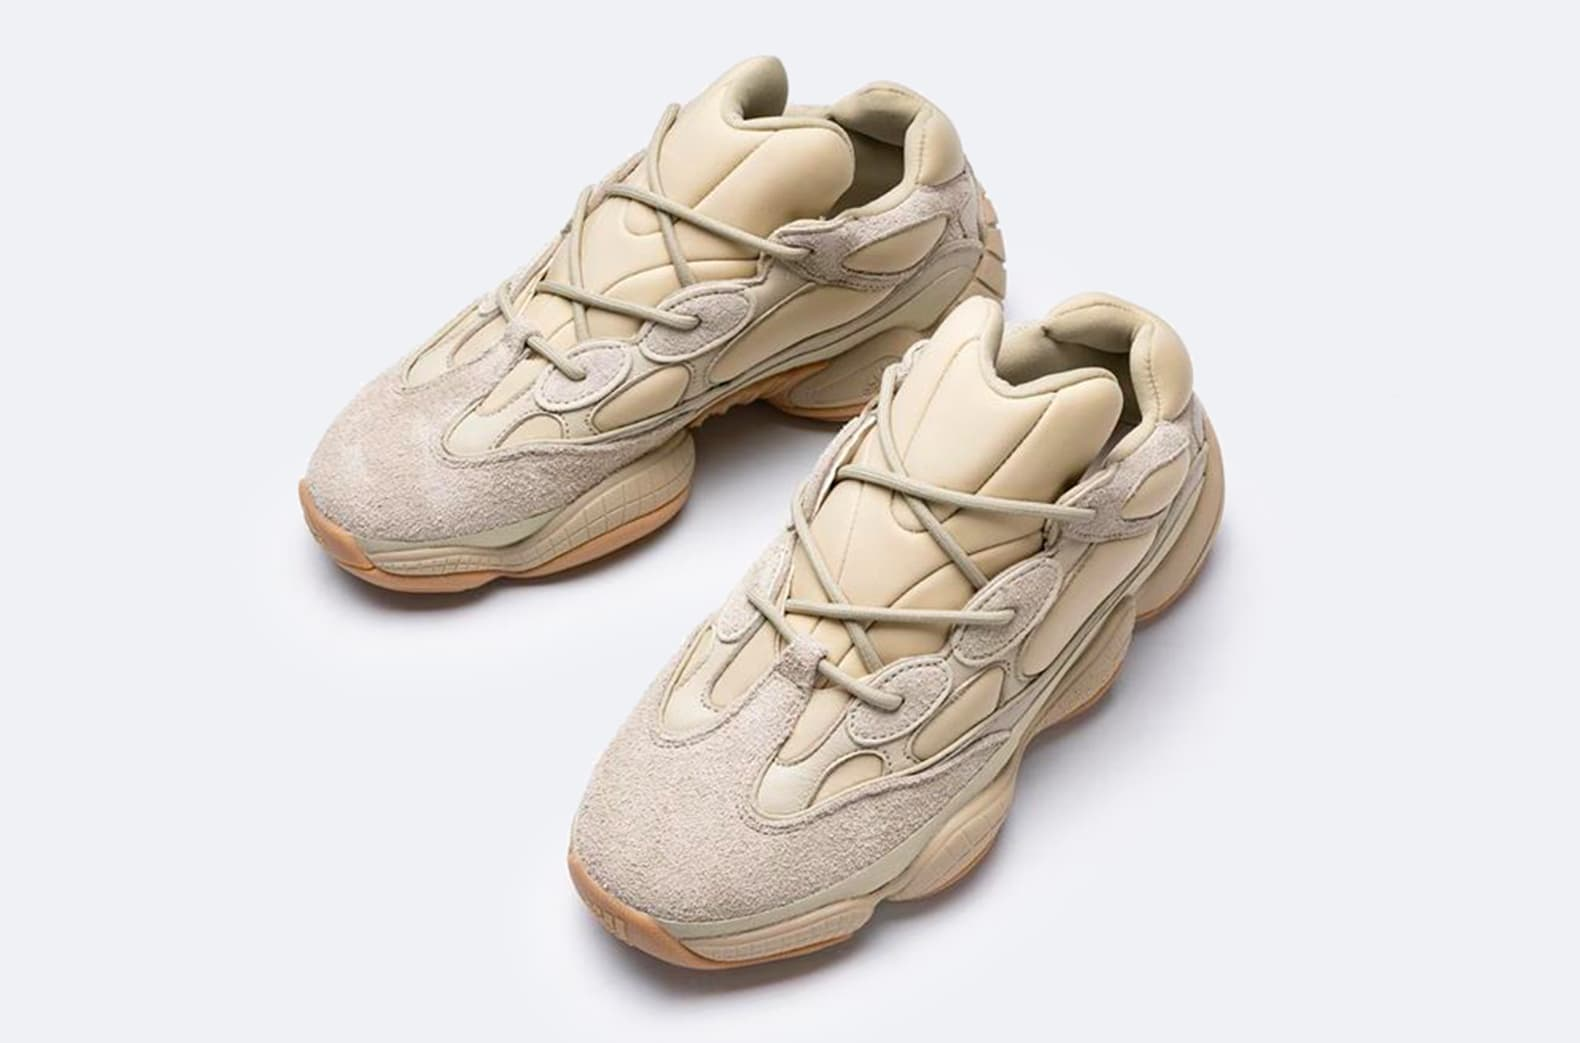 First Look at the 'Stone' Adidas Yeezy 500